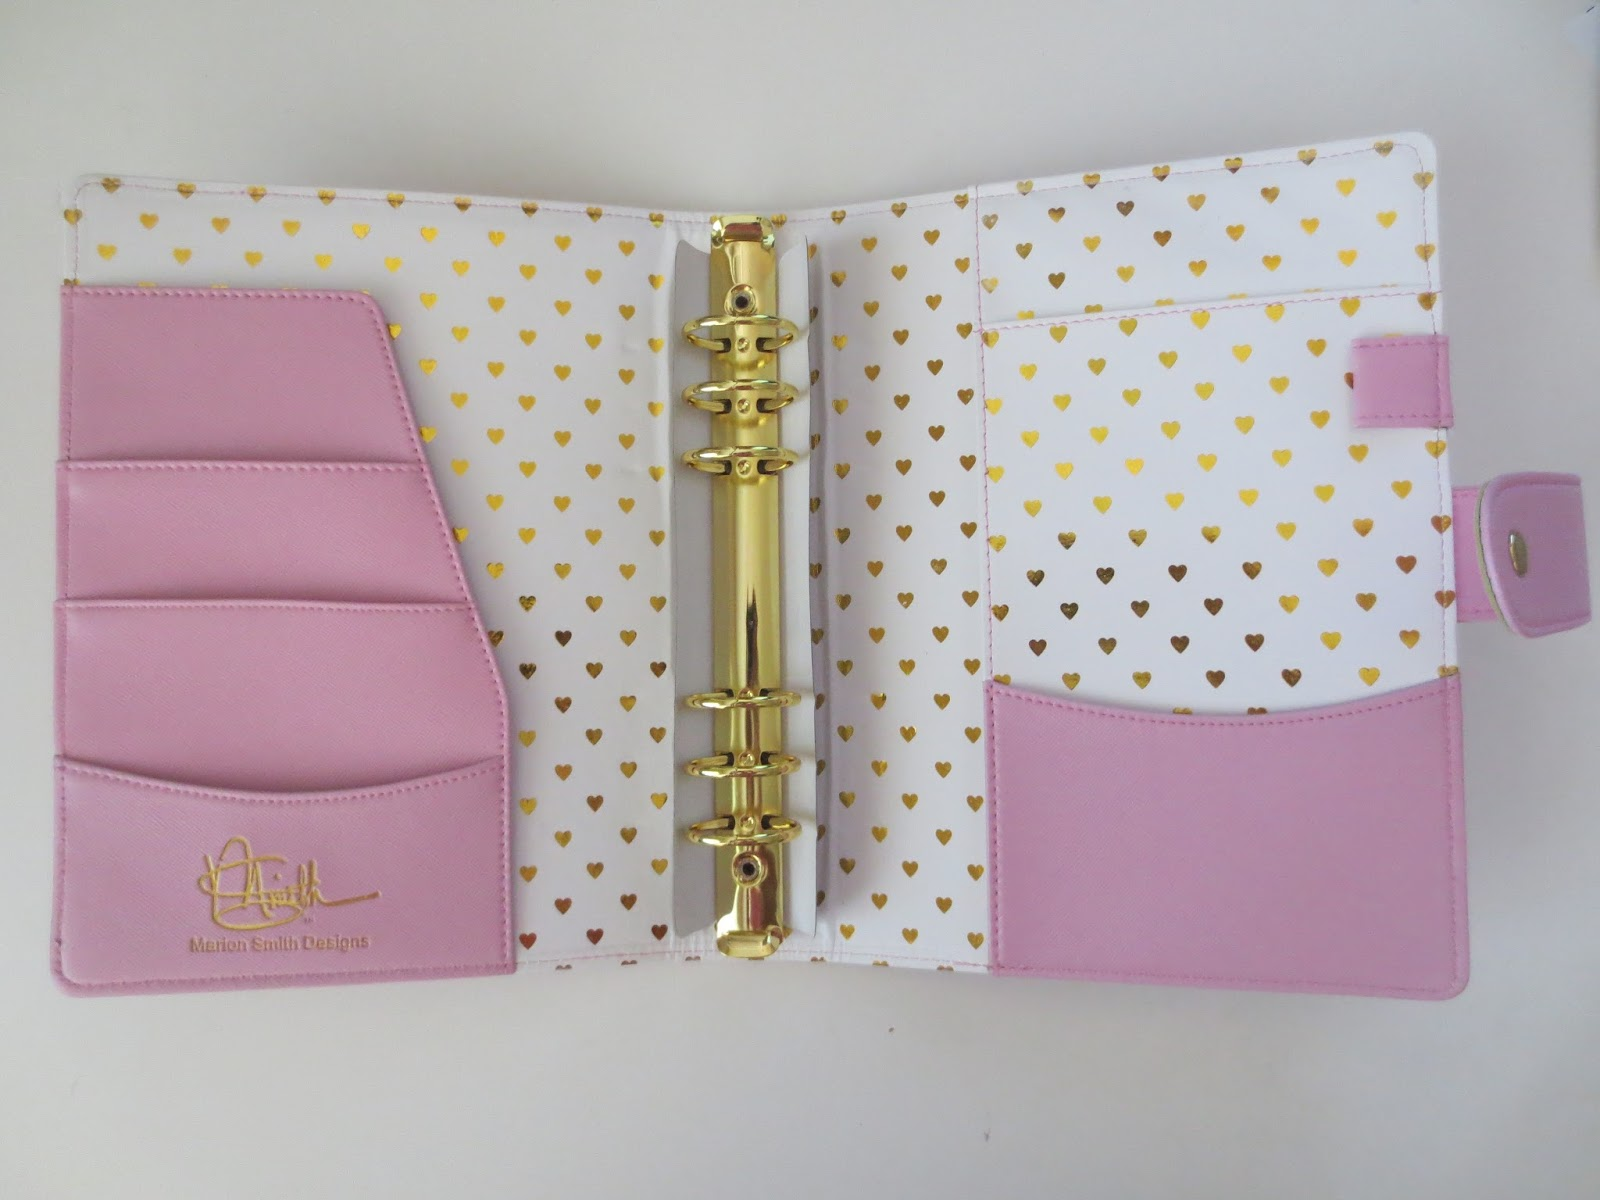 Love lace inc marion smith designs a5 planner binder review for Designer planners